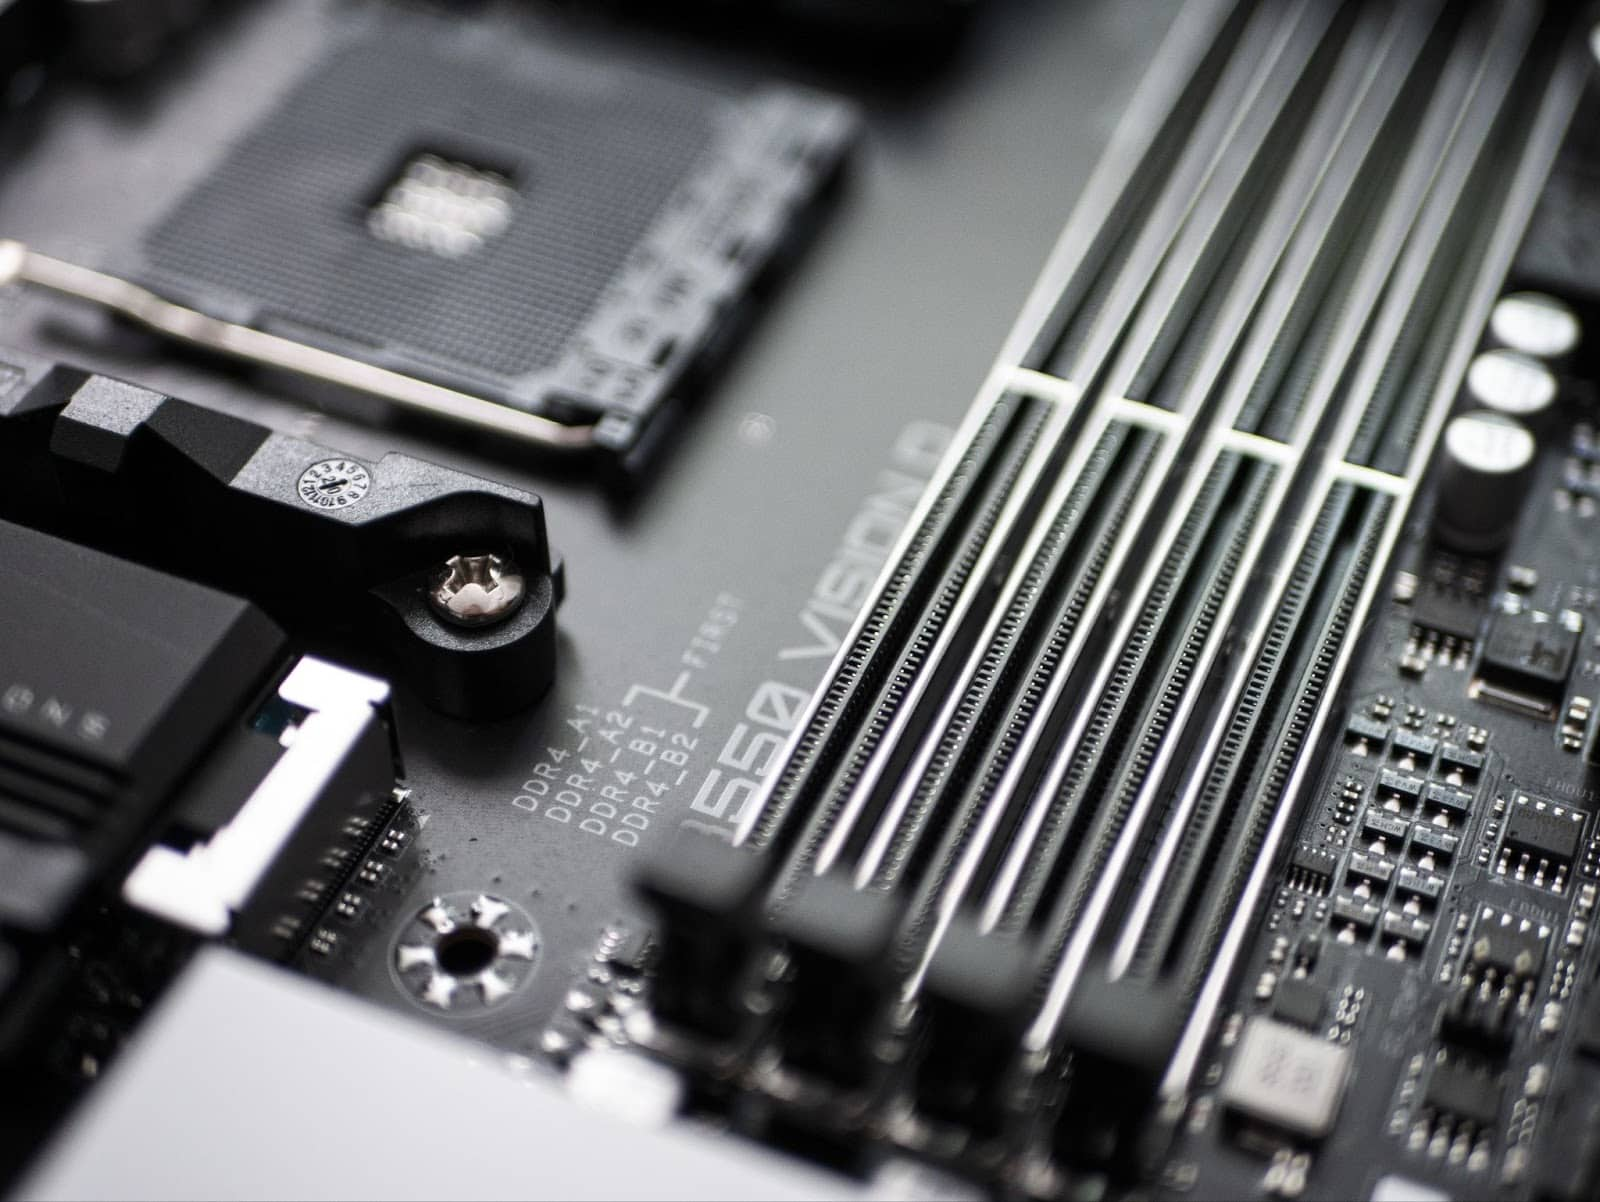 The mobo, arguably the most important PC part to pick